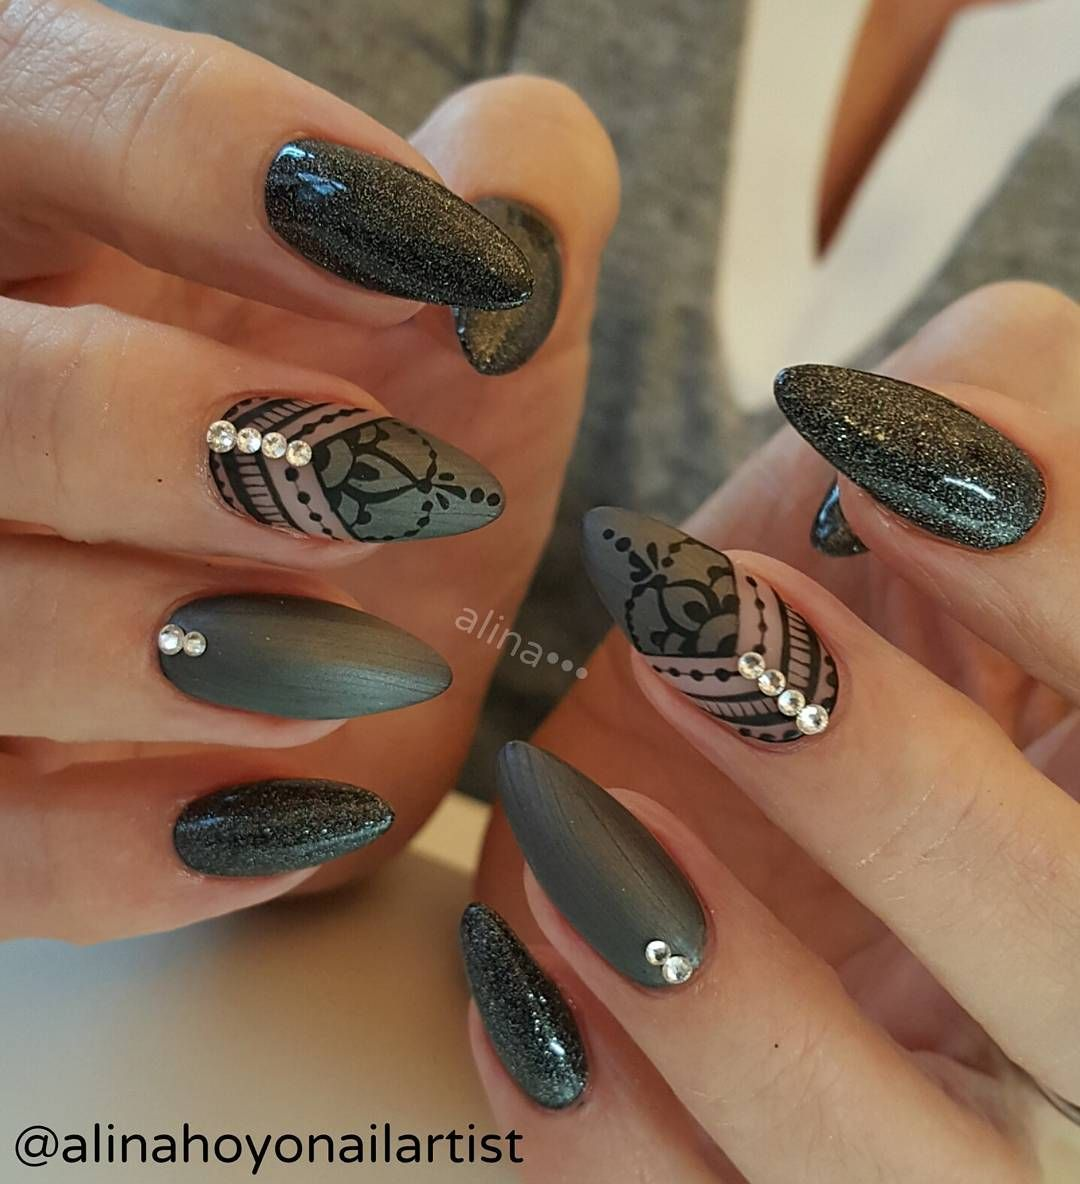 Pin by Kanae on NAIL catalog | Pinterest | Gelish nails and Instagram